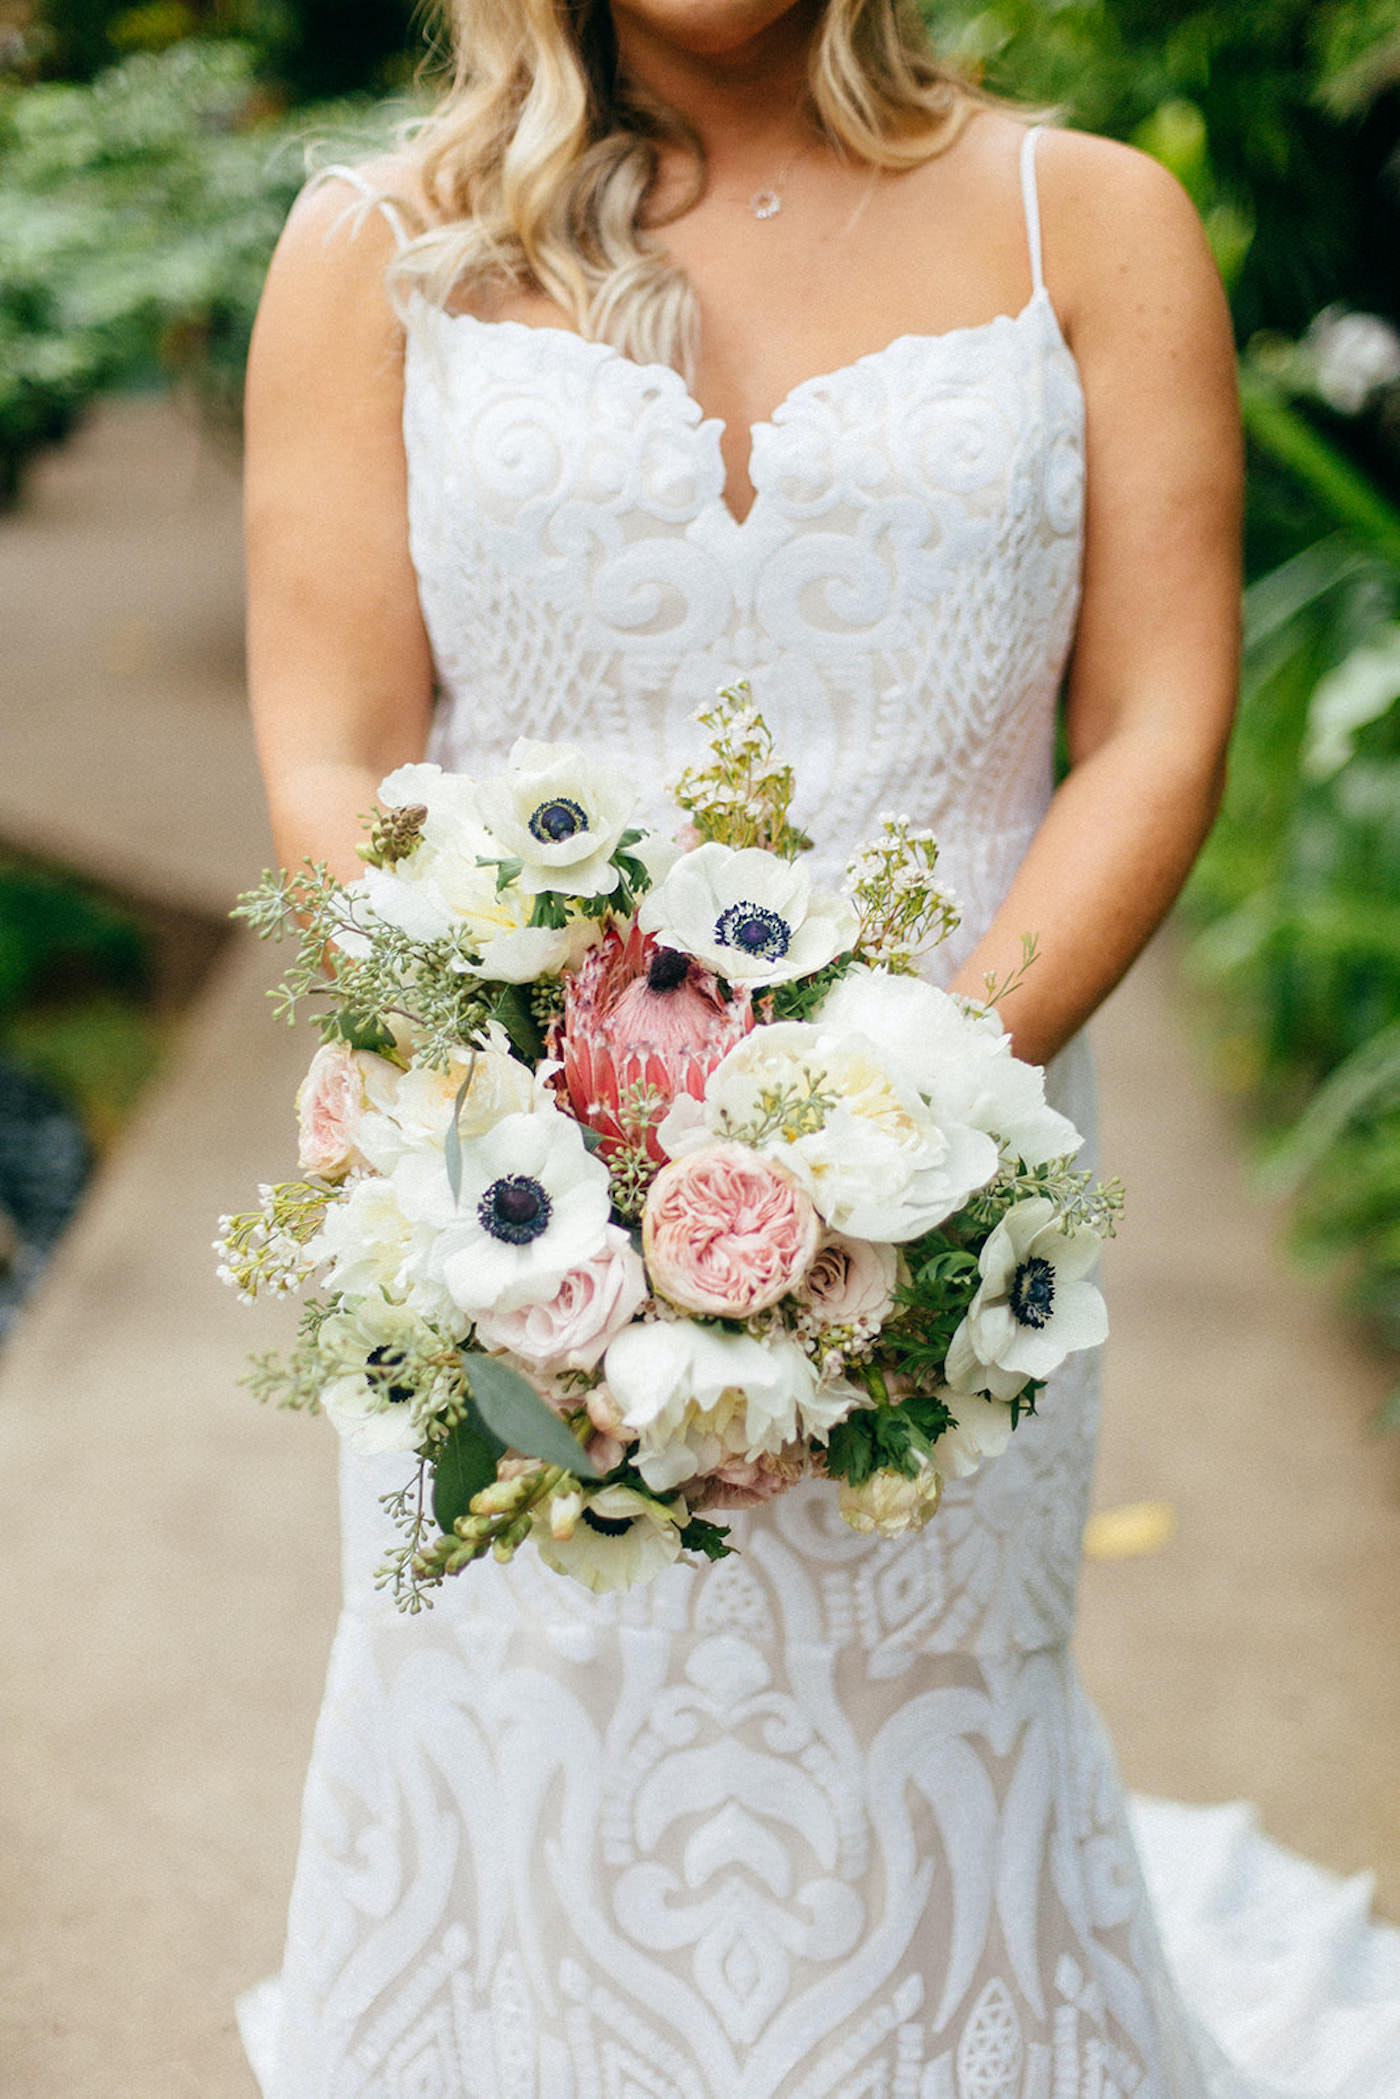 Romantic Florida Bride Holding Garden Inspired Wedding Bouquet with Light Pink Peonies, Blush King Protea, Bride Wearing Hayley Paige Lace Wedding Dress